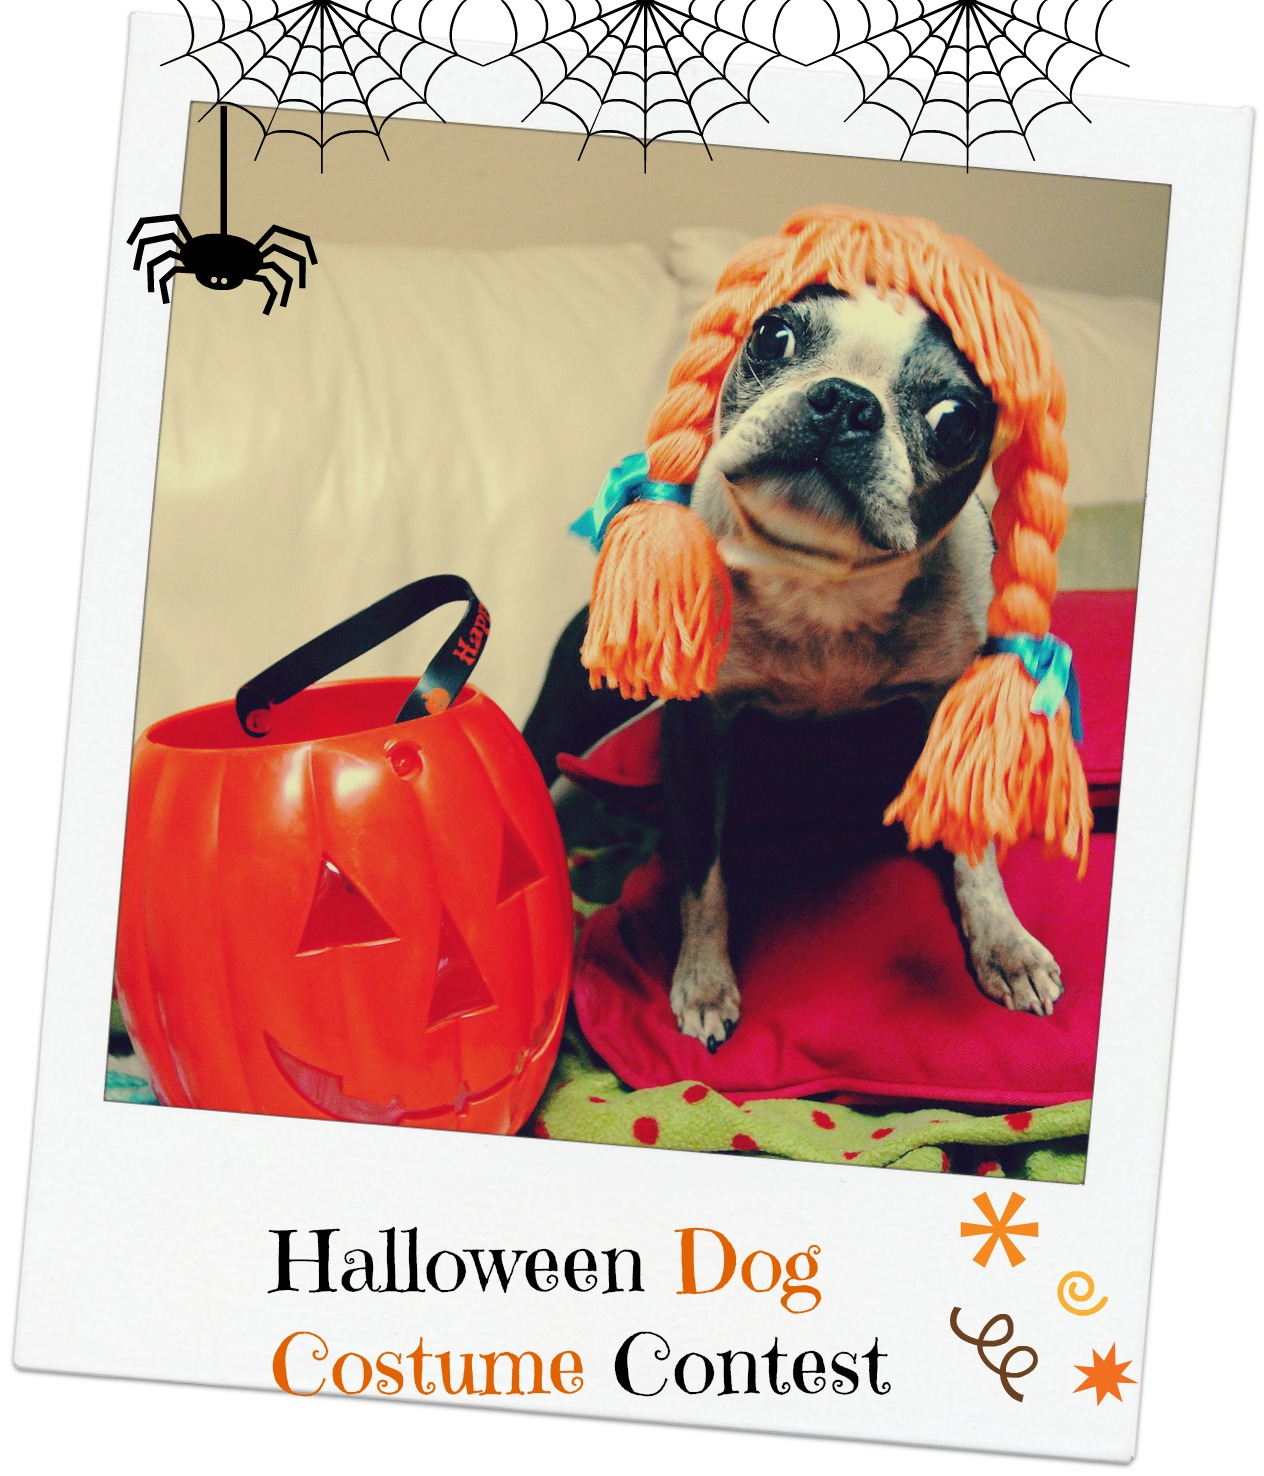 Howl-A-Ween Dog Costume Contest at Powerscourt Estate